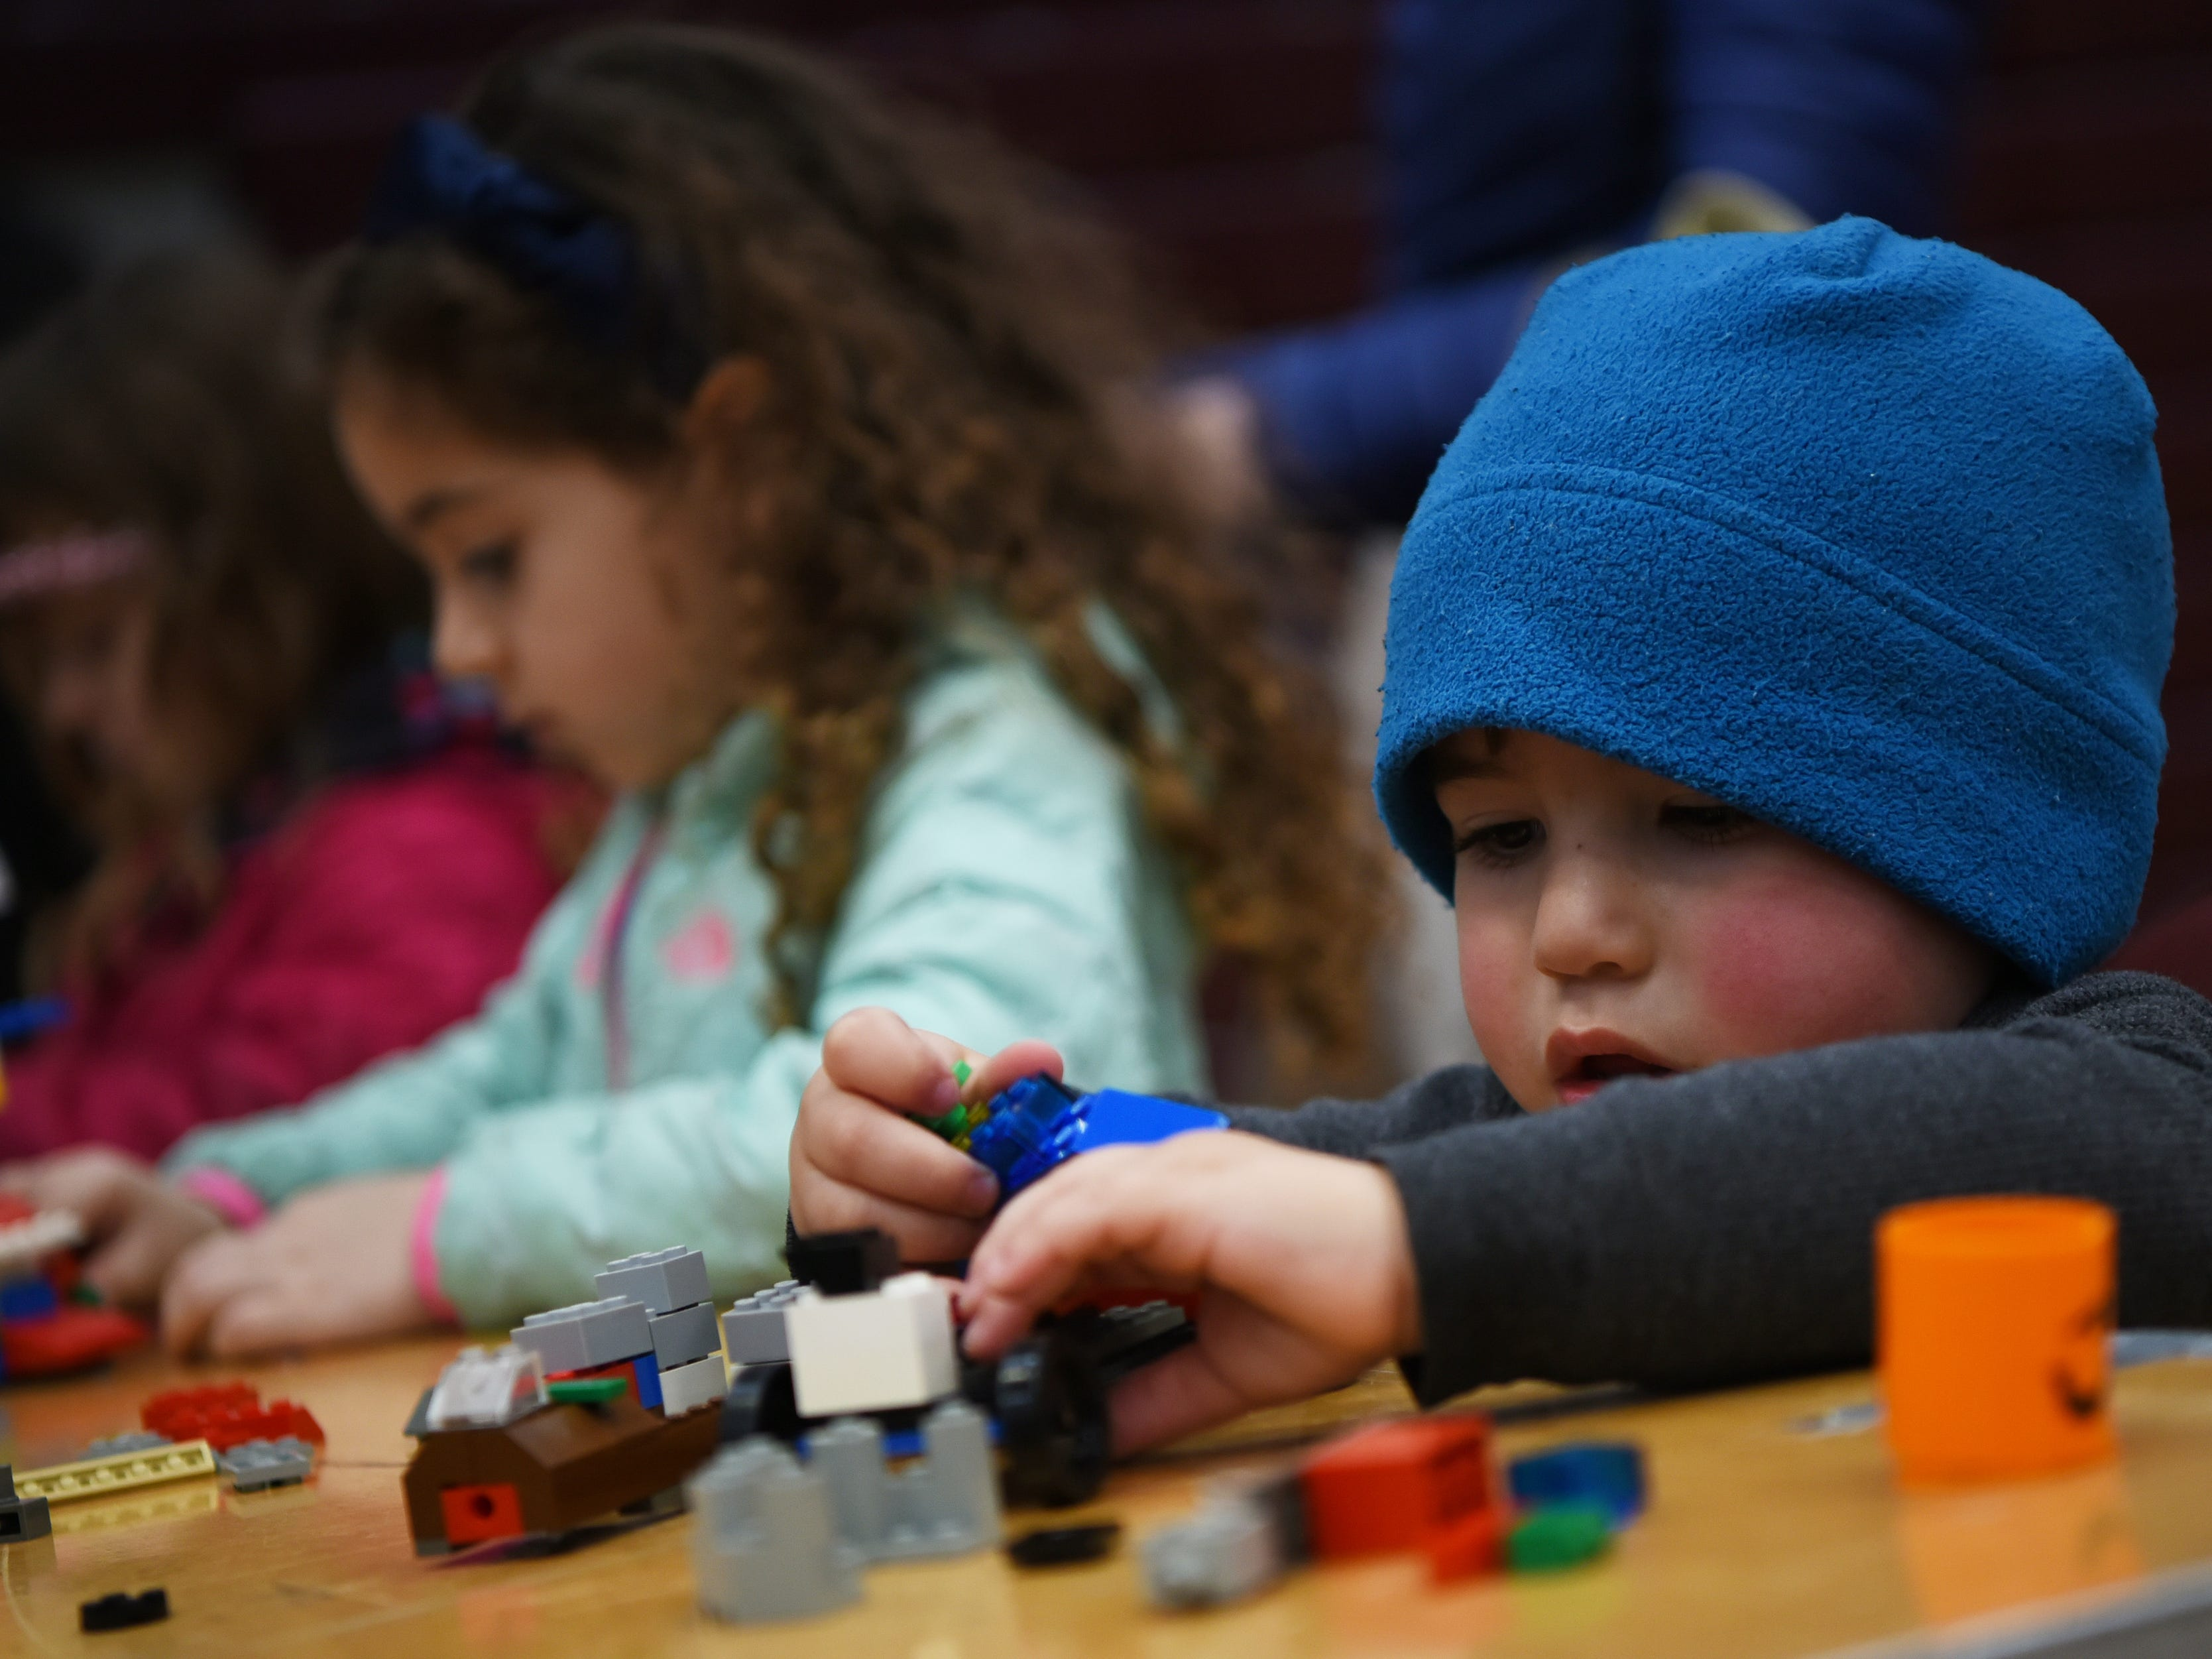 Genevieve Tavani, 4 and Luke Della Torre, 2 play with LEGO blocks. This is one of many activities during Super Science Saturday held at Ridgewood High School in Ridgewood on Saturday March 2, 2019.